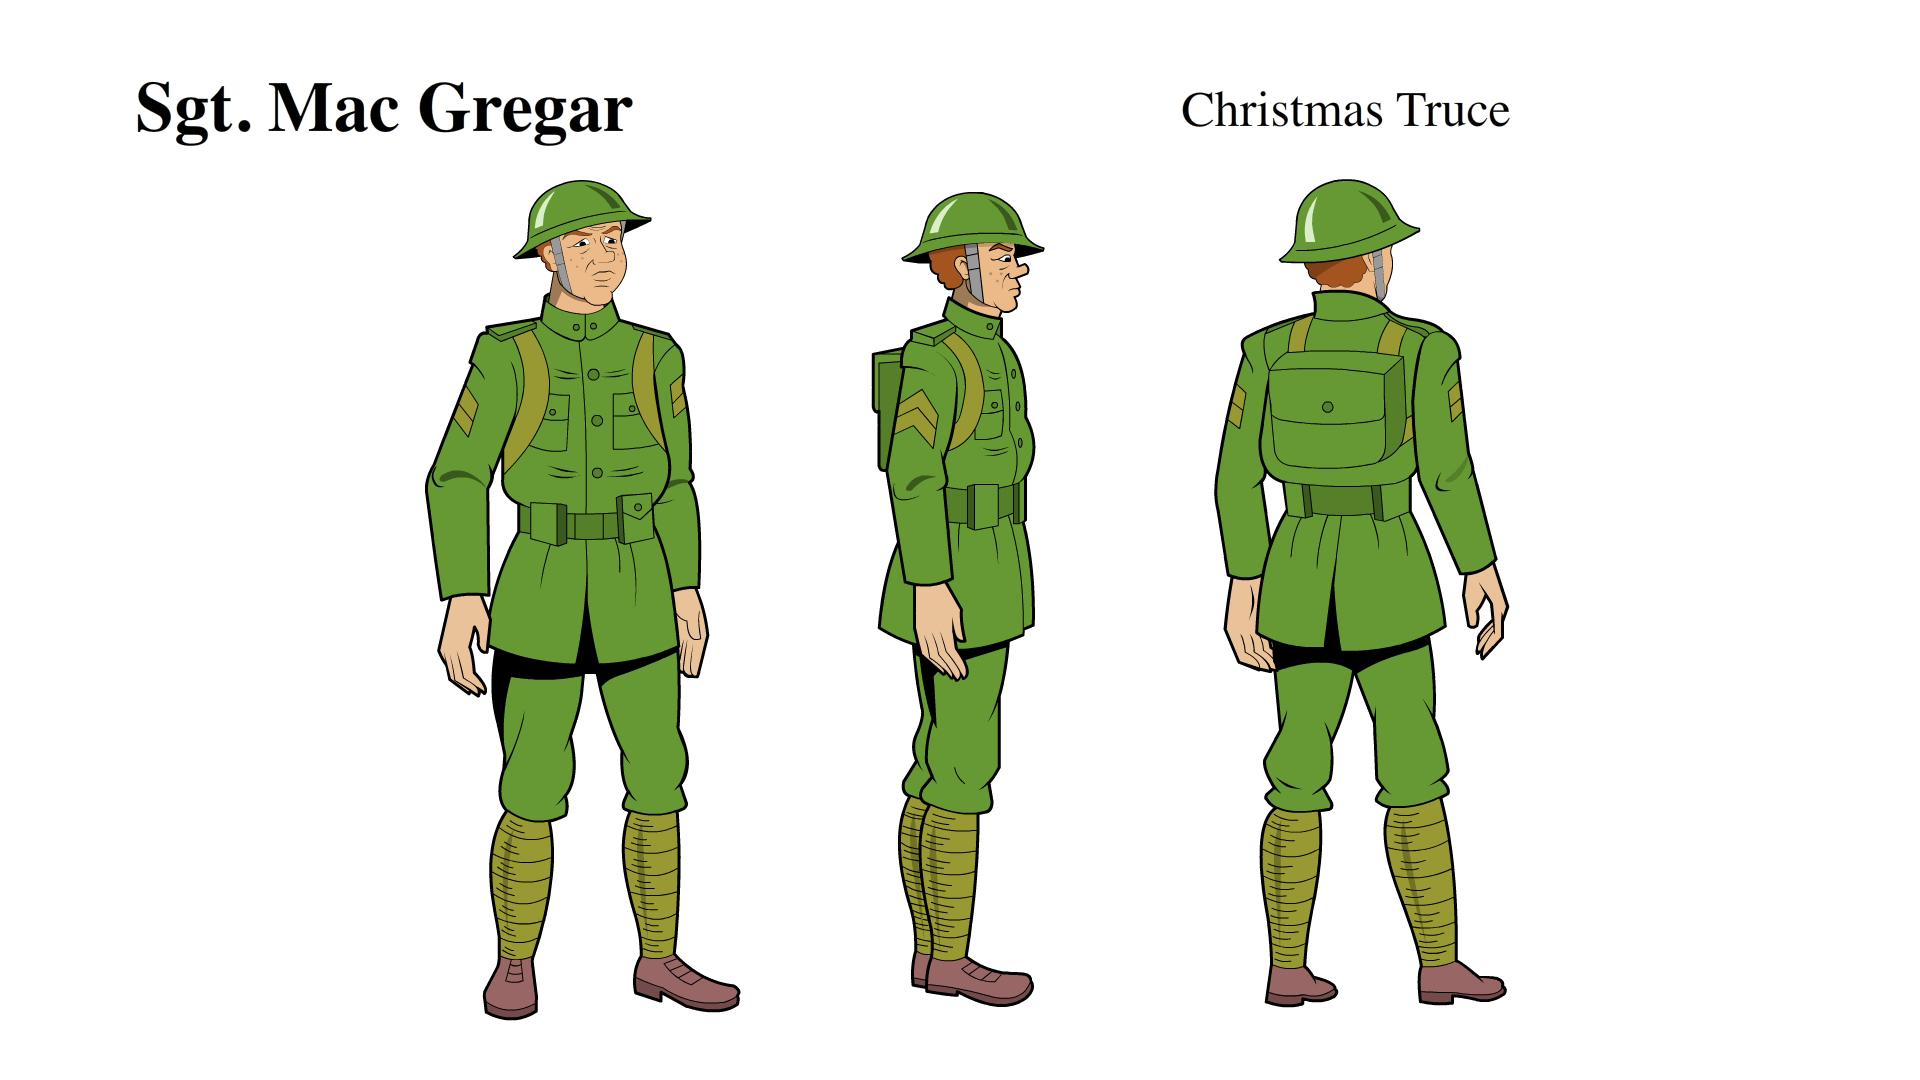 Christmas in the Trenches ©Hallmark Spiritclips